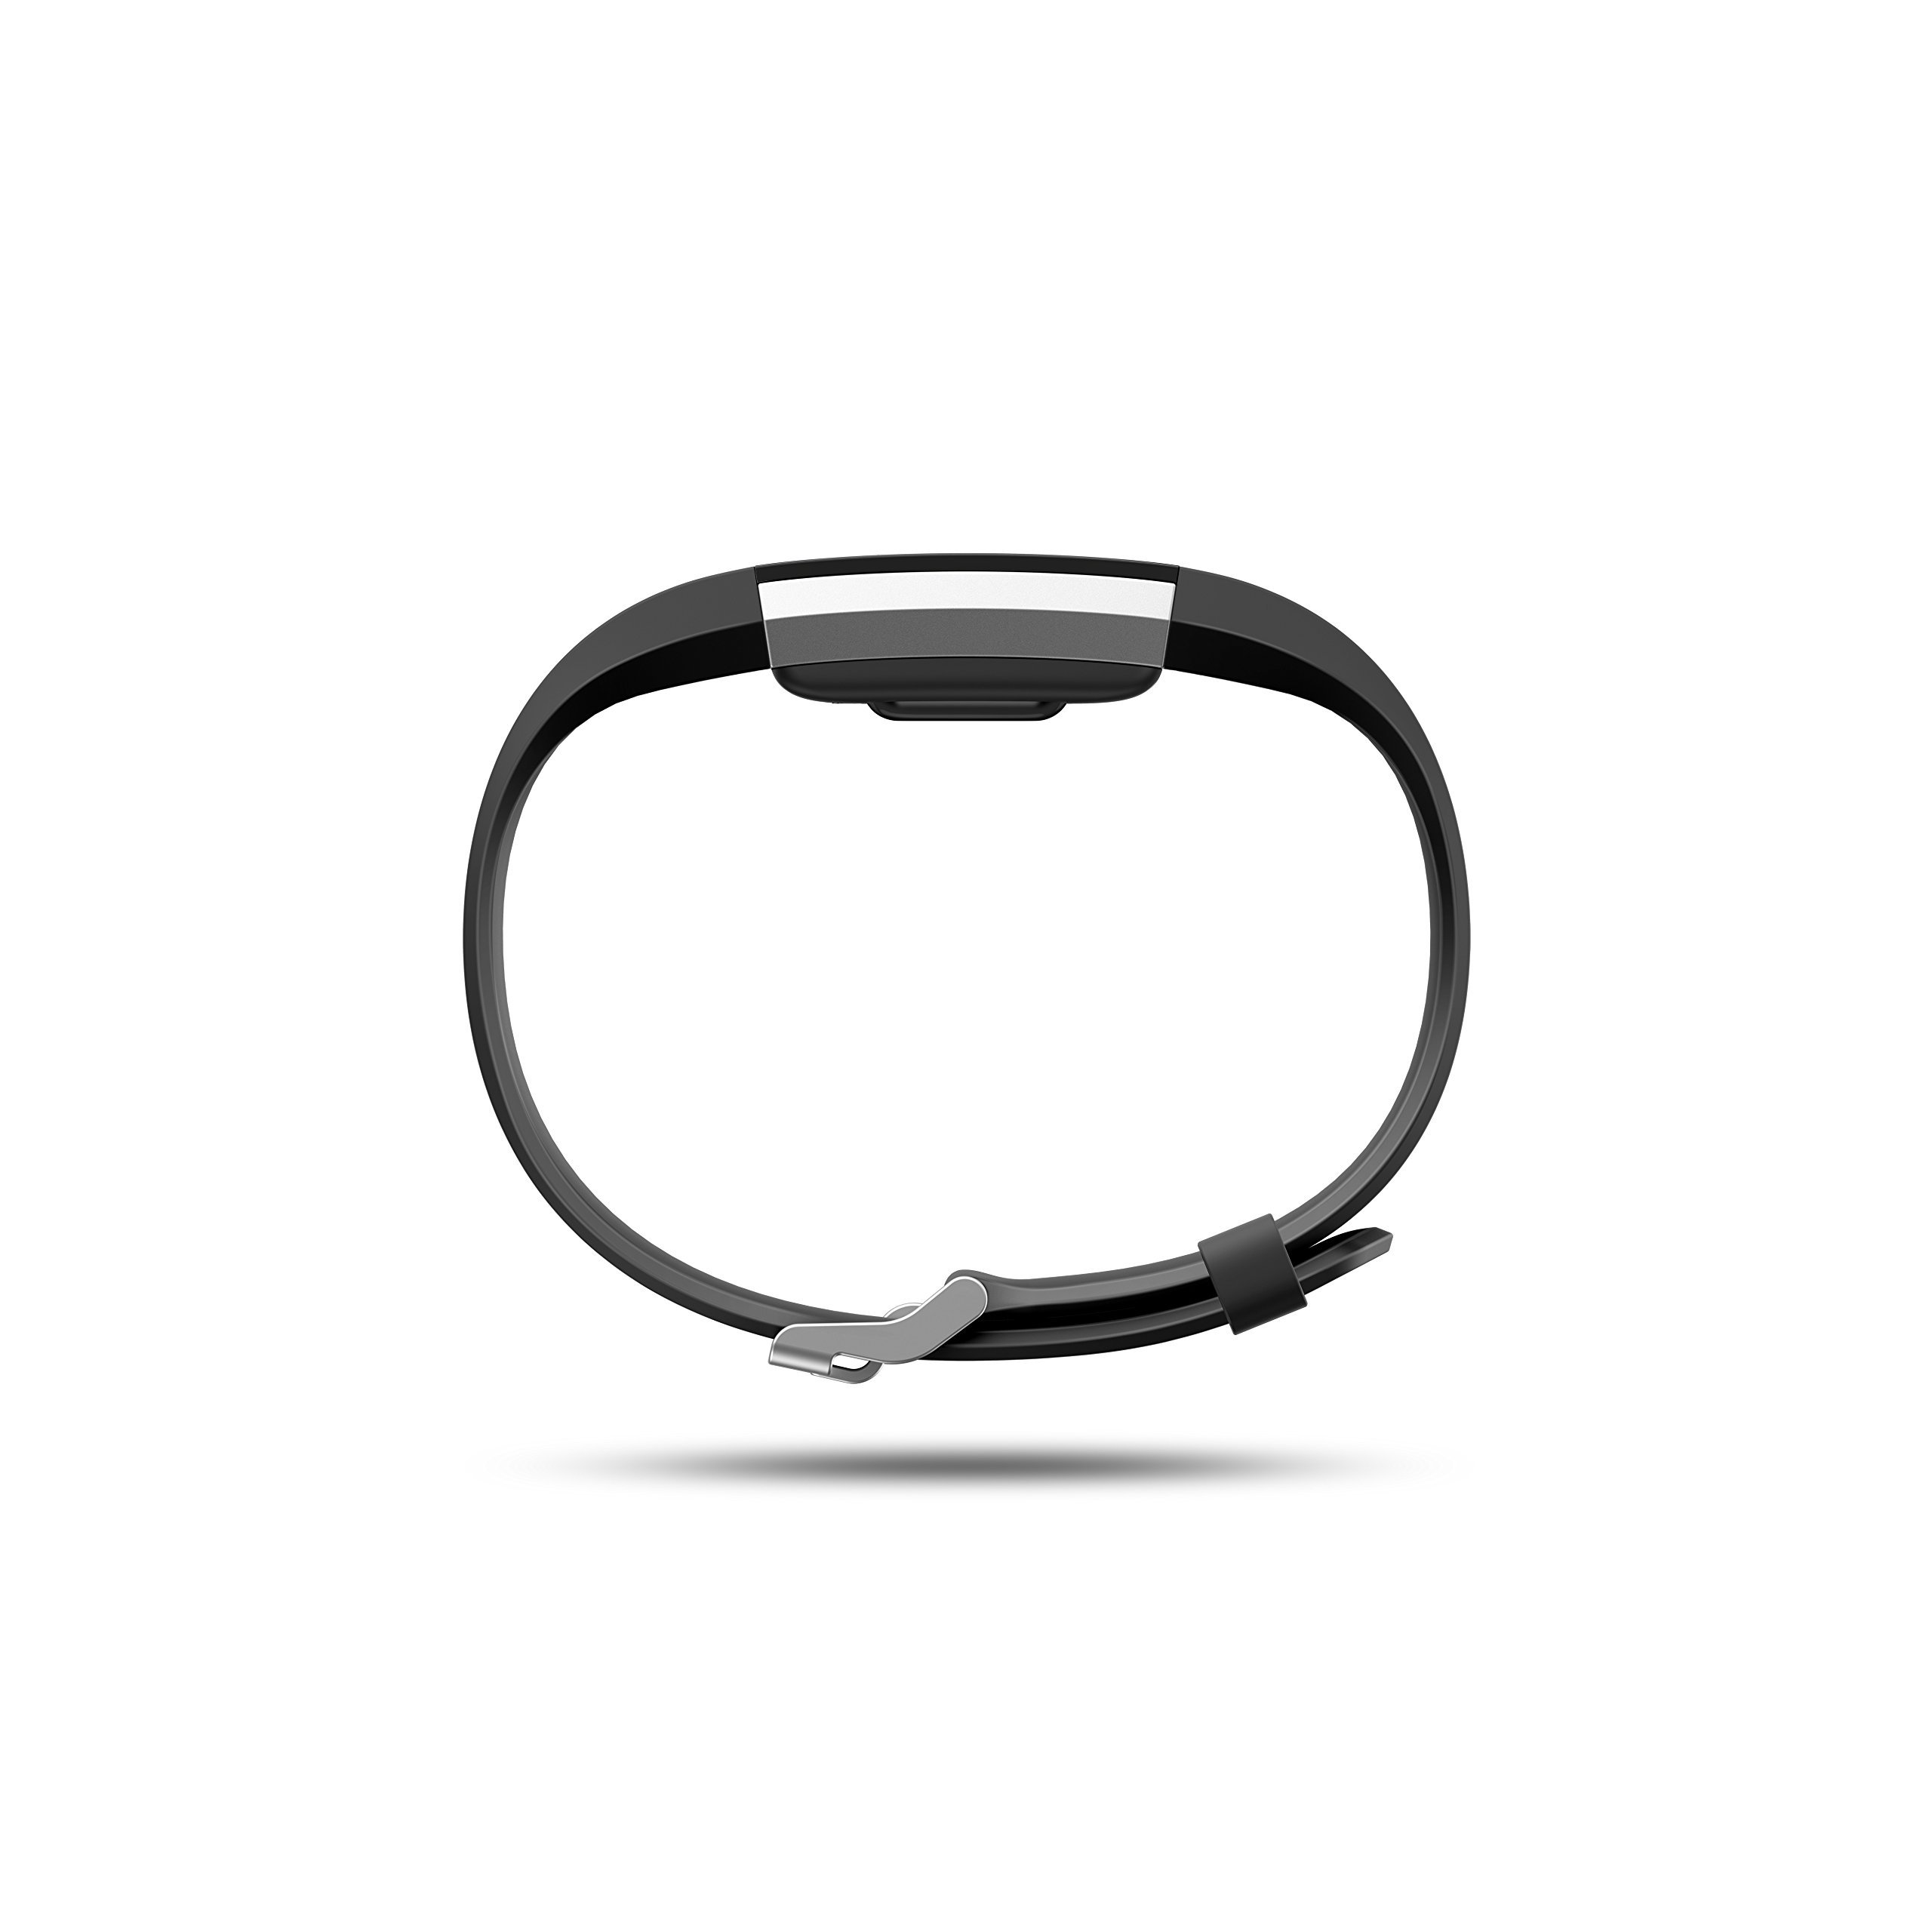 Fitbit Charge 2 Superwatch Wireless Smart Activity and Fitness Tracker + Heart Rate and Sleep Monitor Smart Wristband, Black, Small (5.5-6.7 in) (Renewed) by Fitbit (Image #2)